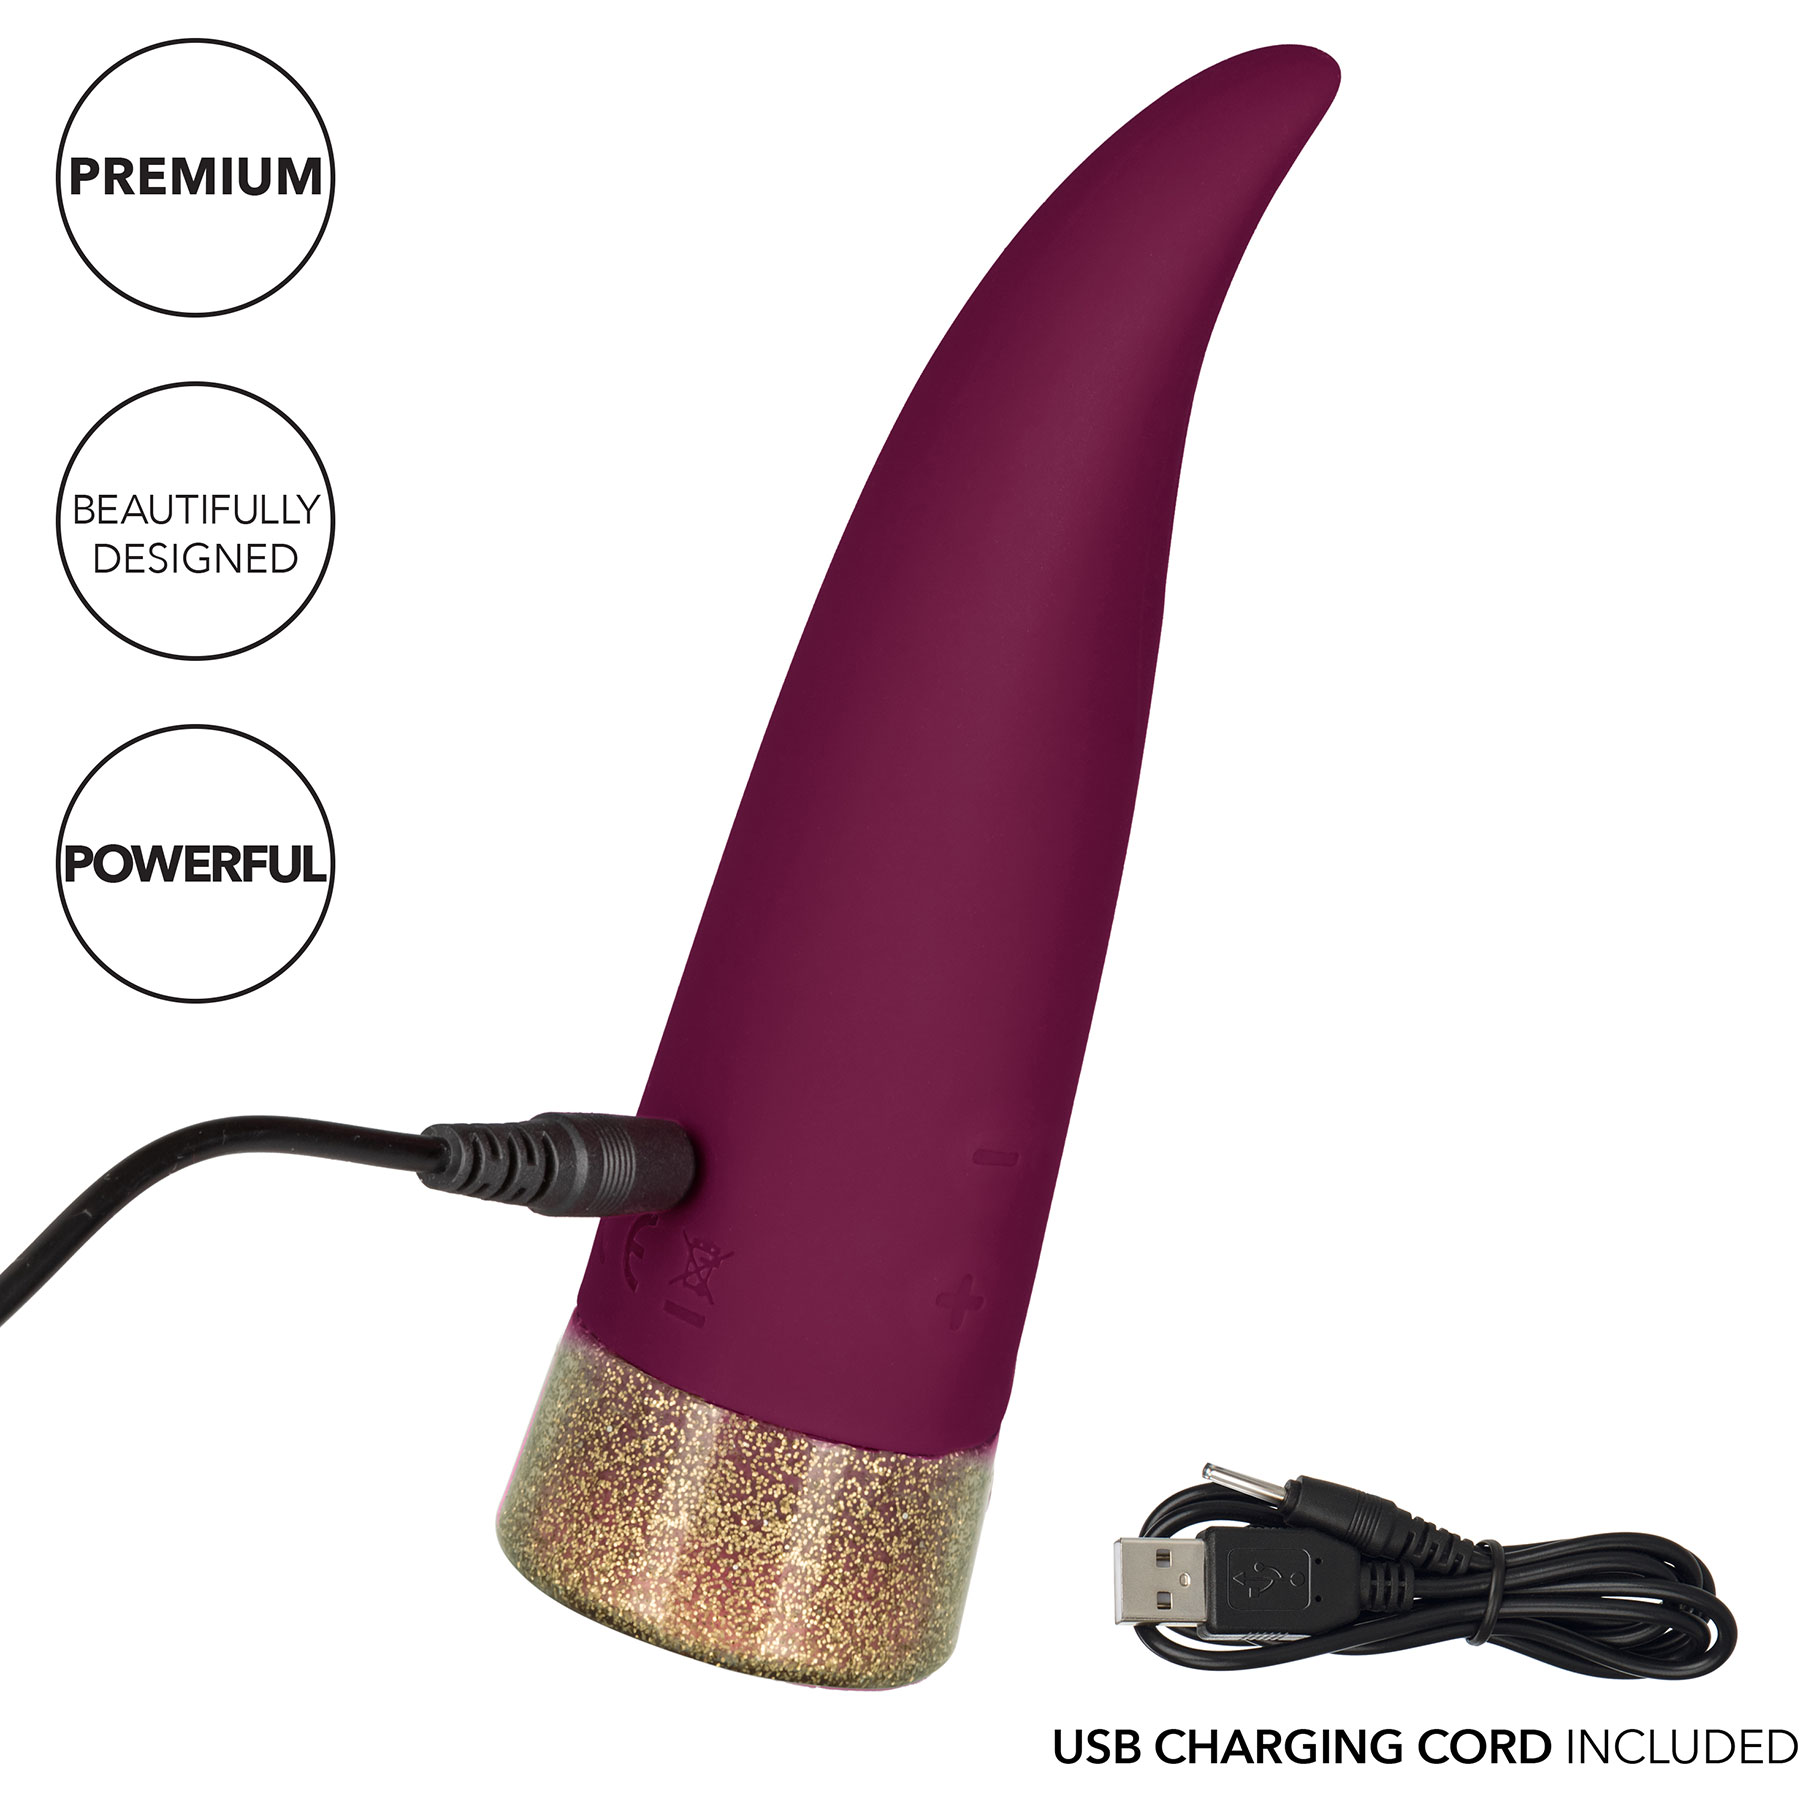 Starstruck Fling Waterproof Rechargeable Silicone Clitoral Vibrator - Charging